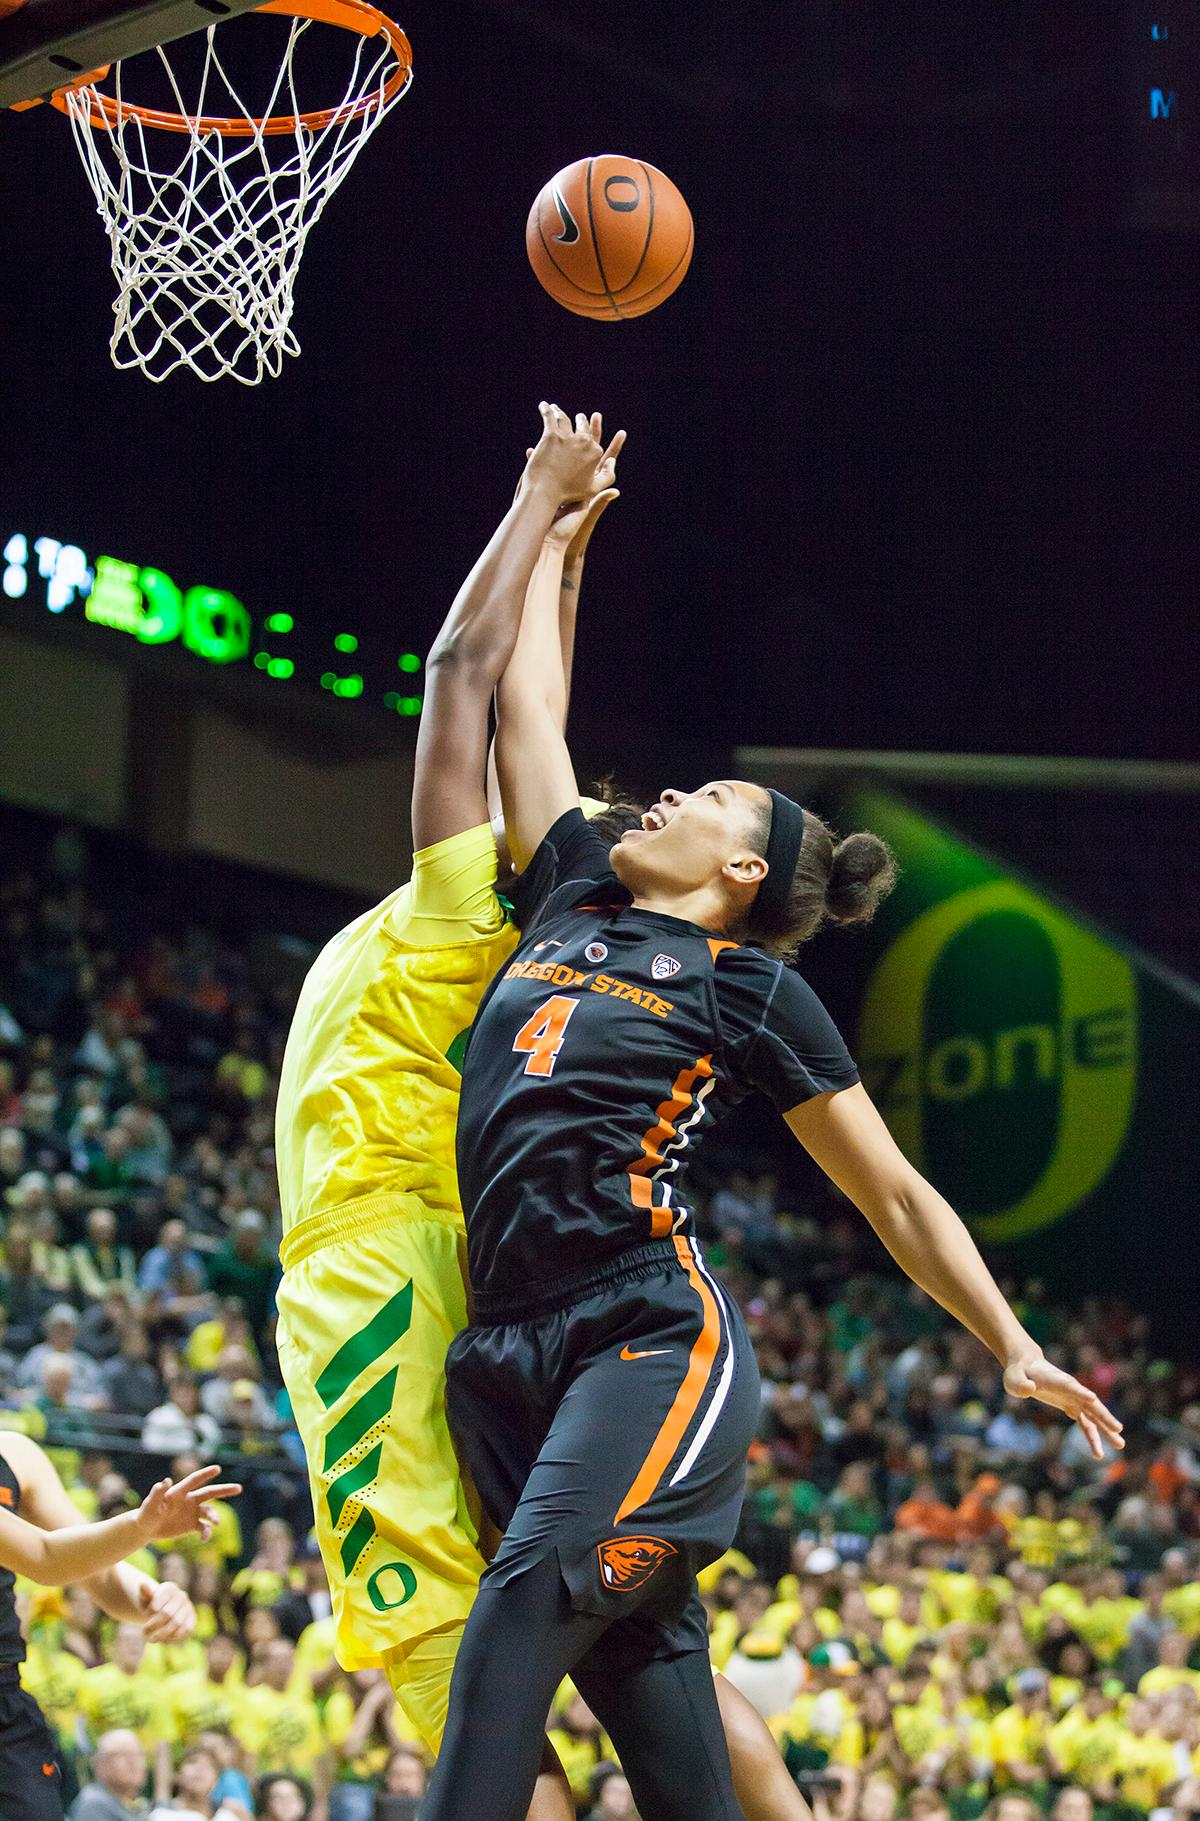 Oregon forward Ruthy Hebard (#24) and Oregon State center Breanna Brown (#4) jump to catch a rebounded ball. The Oregon Ducks lost 40 to 43 against the Oregon State Beavers after a tightly matched 4th quarter. Photo by Ben Lonergan, Oregon News Lab